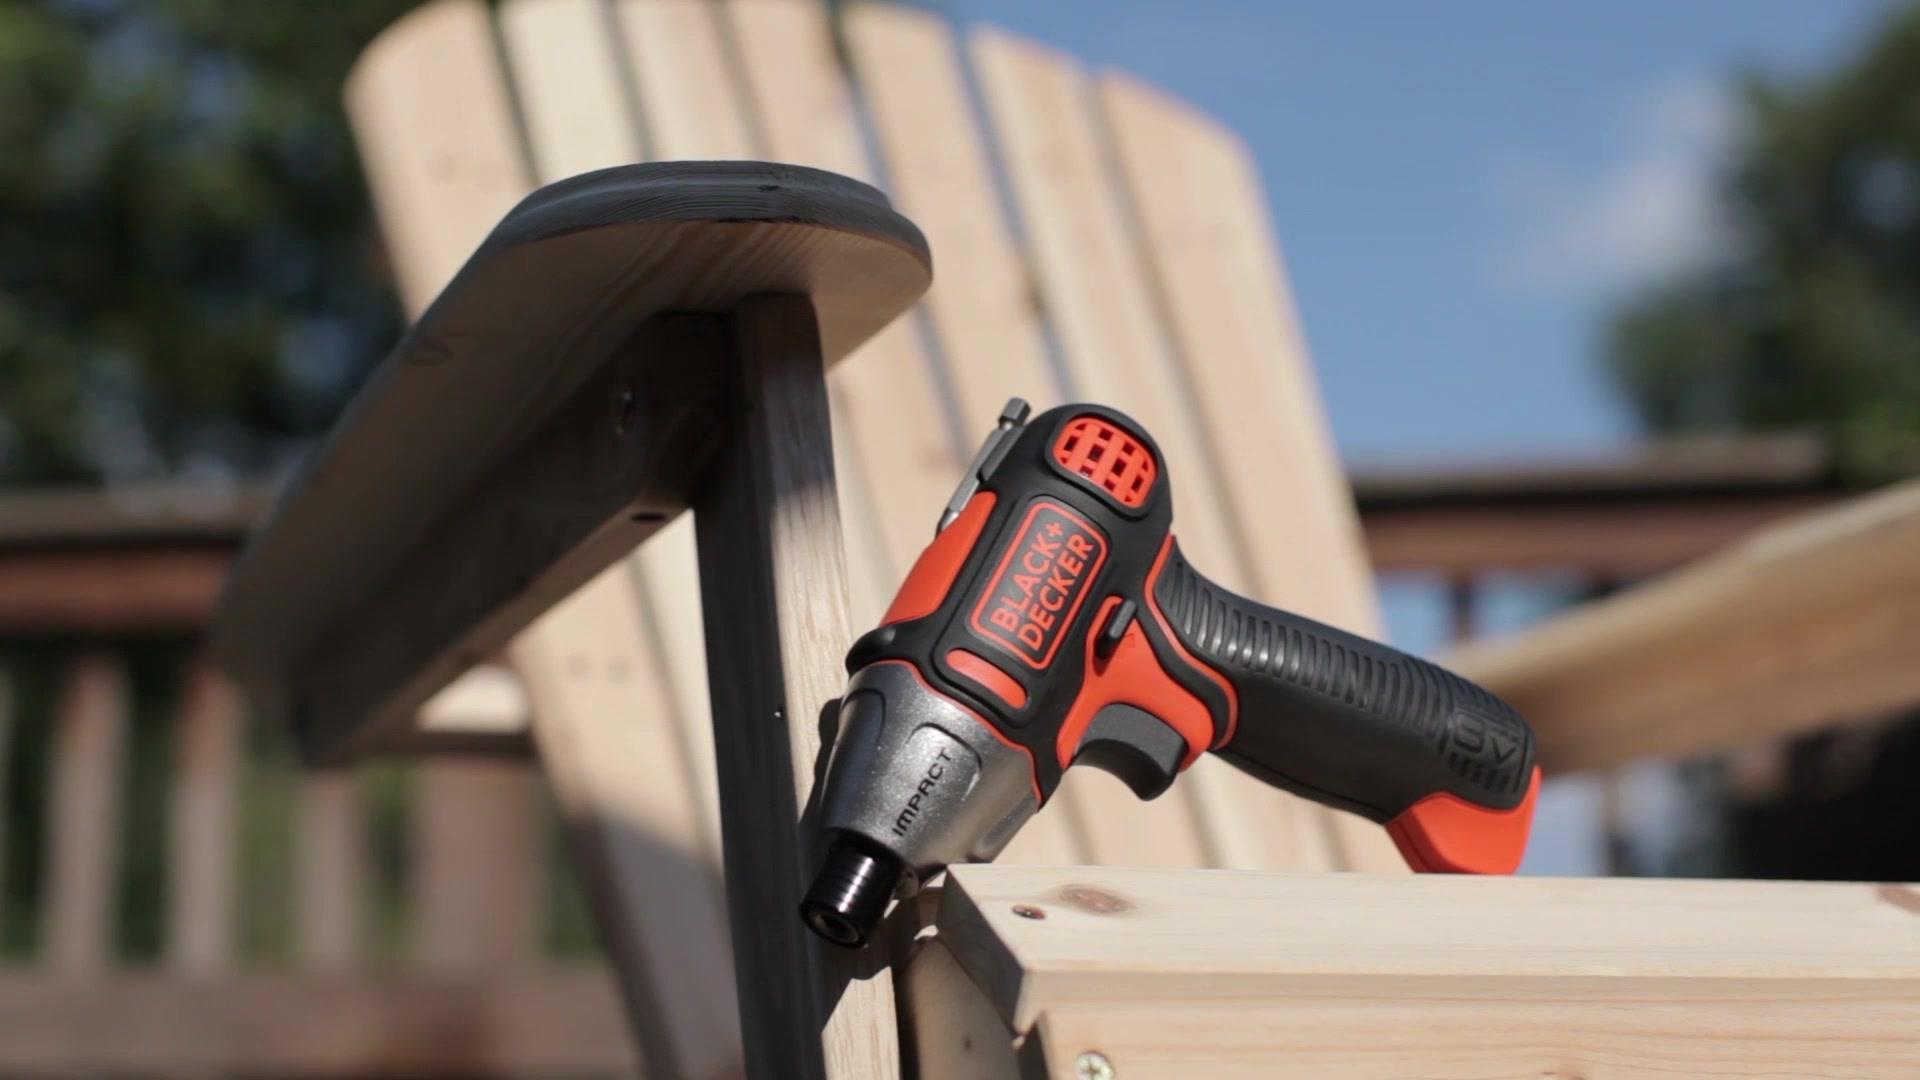 The 8V MAX* Impact Screwdriver | BLACK+DECKER